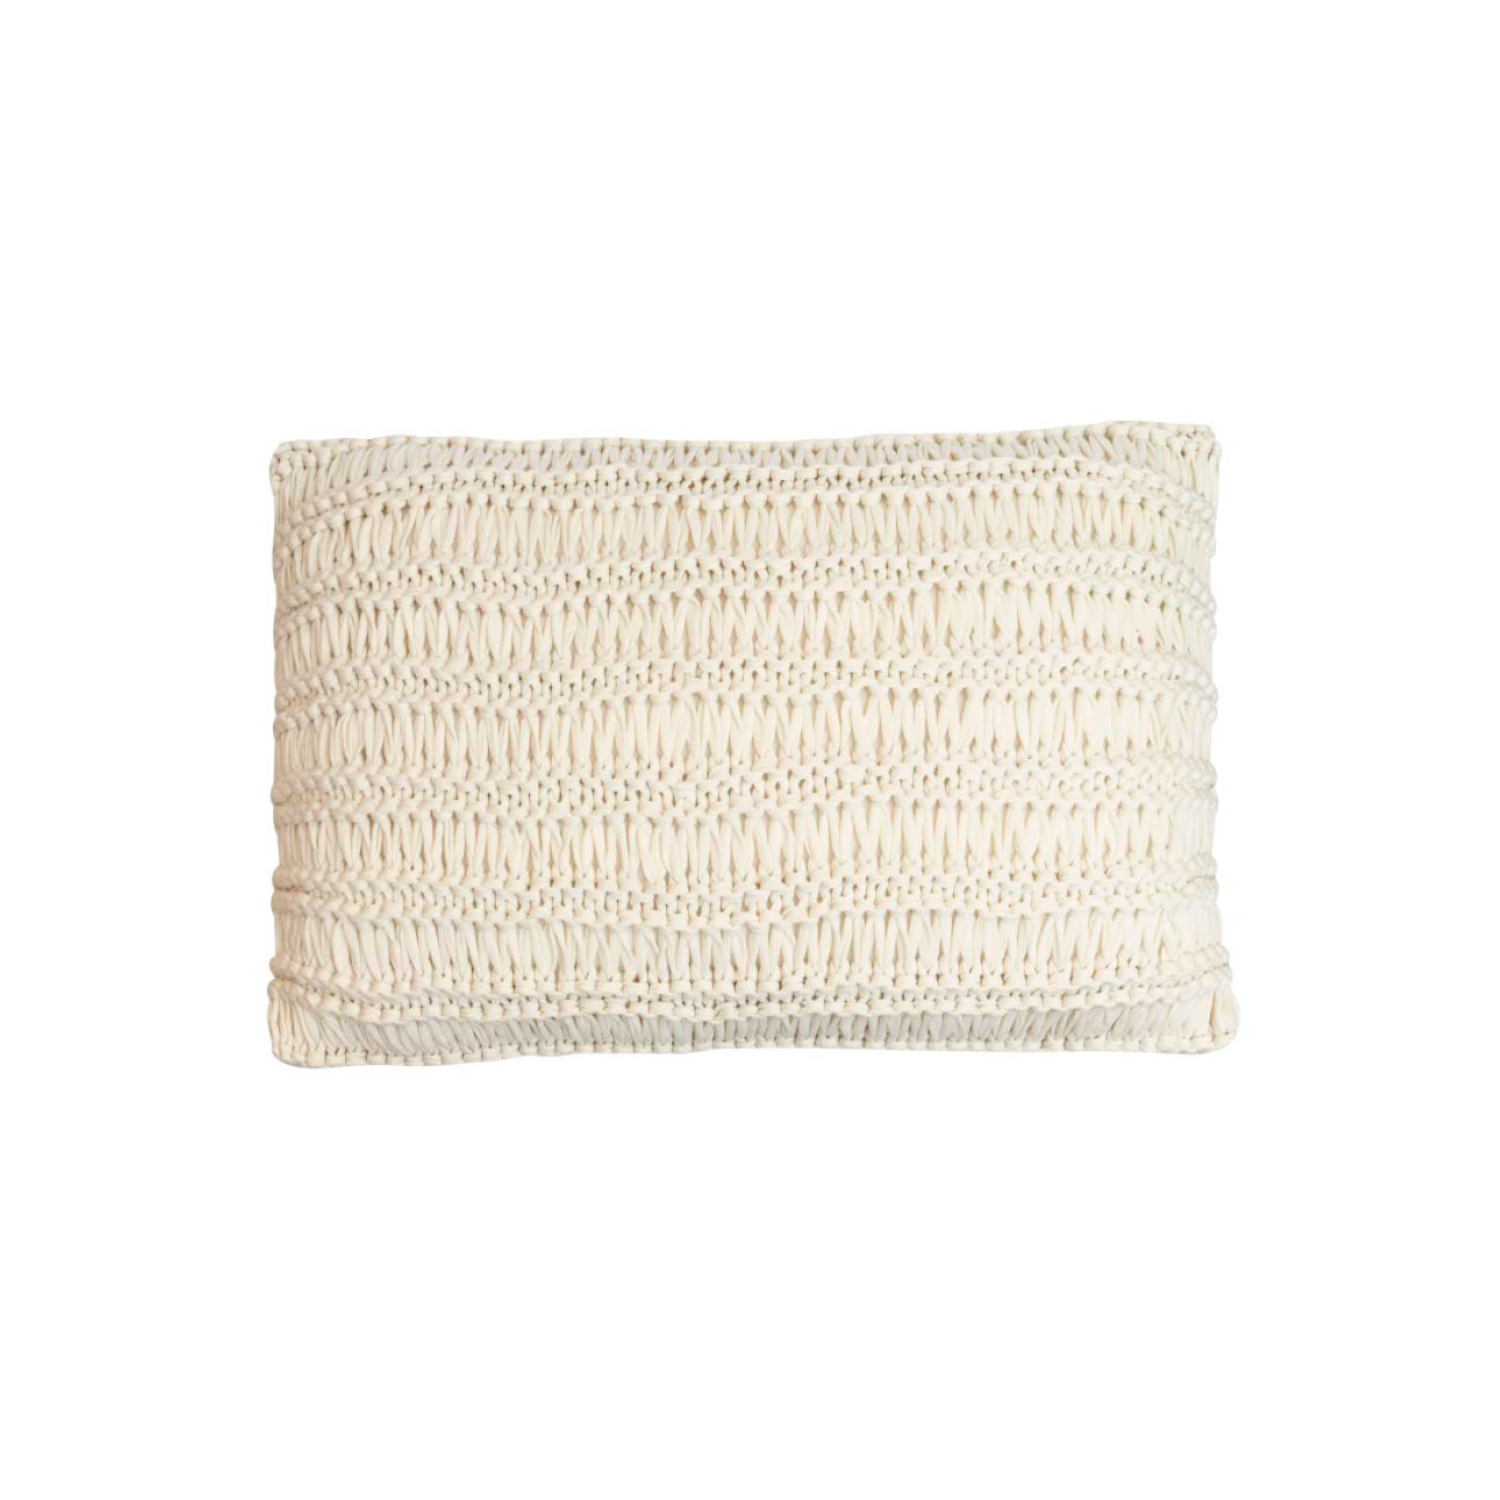 Antwerp Knitted Cotton Cushion Large - The Antwerp Line is carefully knitted within a trained community of women that found in their craft a way to provide for their families, each one of these cushions and throws is unique.  Elisa Atheniense Home soft indoors collection is made with natural cotton fibres, eco-friendly, handwoven or elaborated using traditional hand-loom techniques. The use of organic materials brings softness and comfort to the space. This collection combines their mission for responsible sourcing and manufacturing.  The hand woven cotton, washable cushion cover is made in Brazil and the inner cushion is made in the UK. All cushions come with Hollow Fibre filling. European Duck Feathers are optional upon request at an extra cost. Please enquire for more information and see colour chart for reference.   | Matter of Stuff